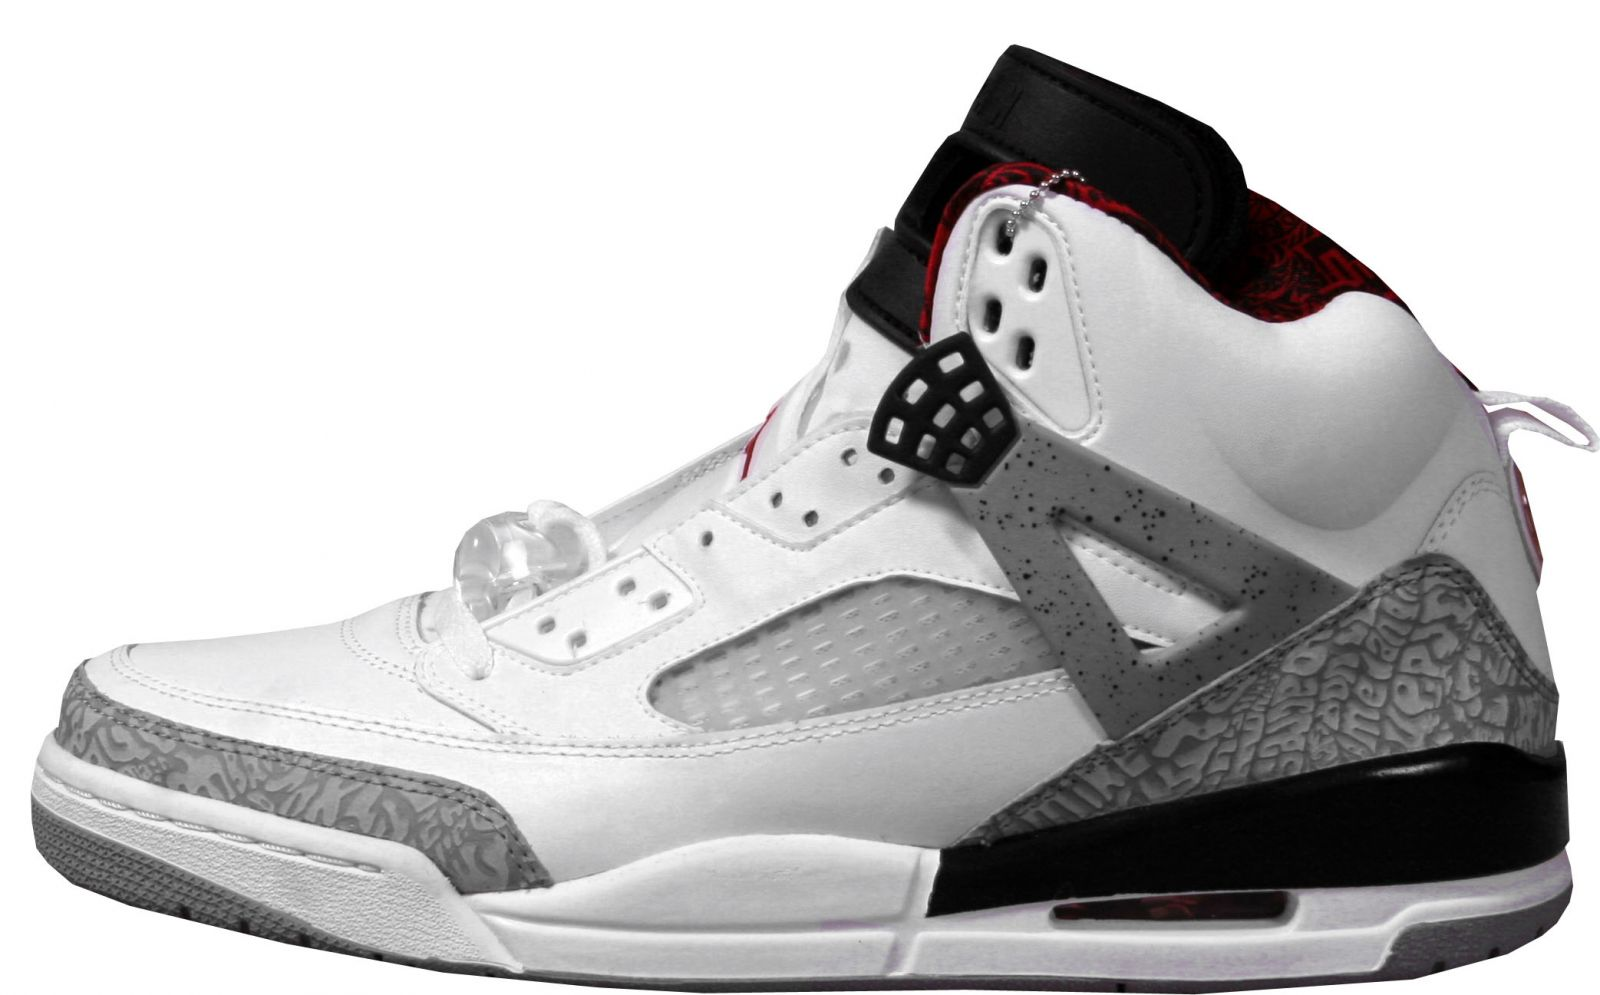 new product 0efd5 76f00 Jordan Spiz ike  The Definitive Guide to Colorways   Sole Collector